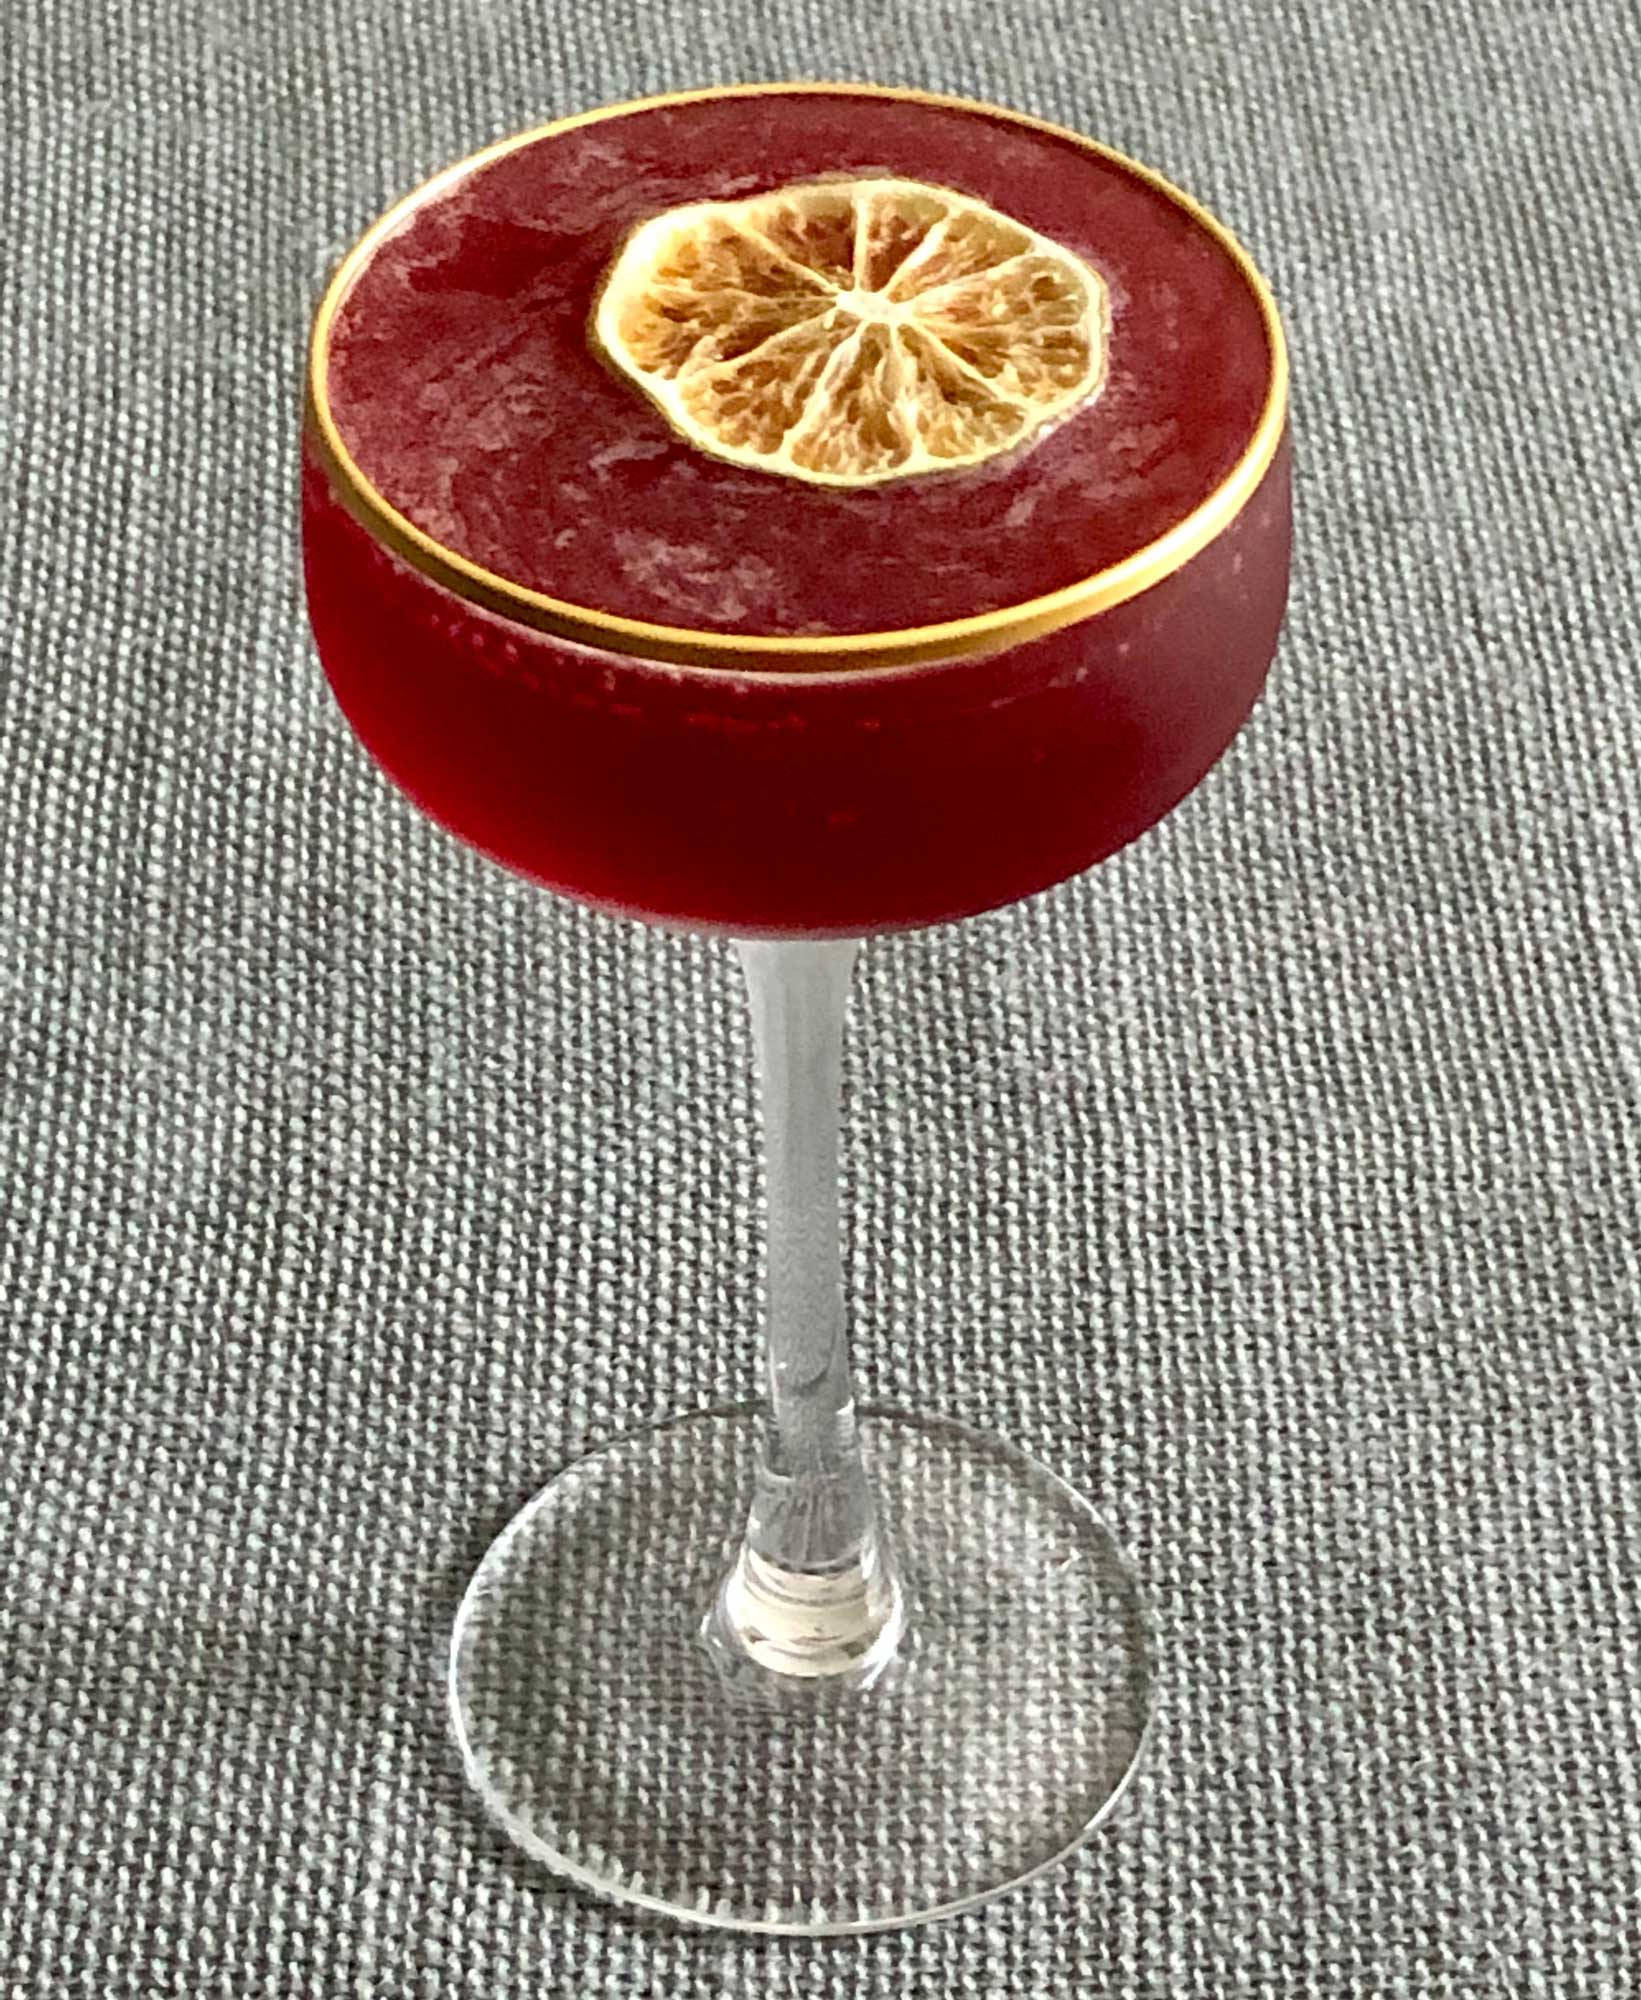 An example of the Continental Daiquiri, the mixed drink (cocktail) featuring white rum, Rothman & Winter Orchard Elderberry Liqueur, lemon juice, lime juice, and rich simple syrup; photo by Lee Edwards